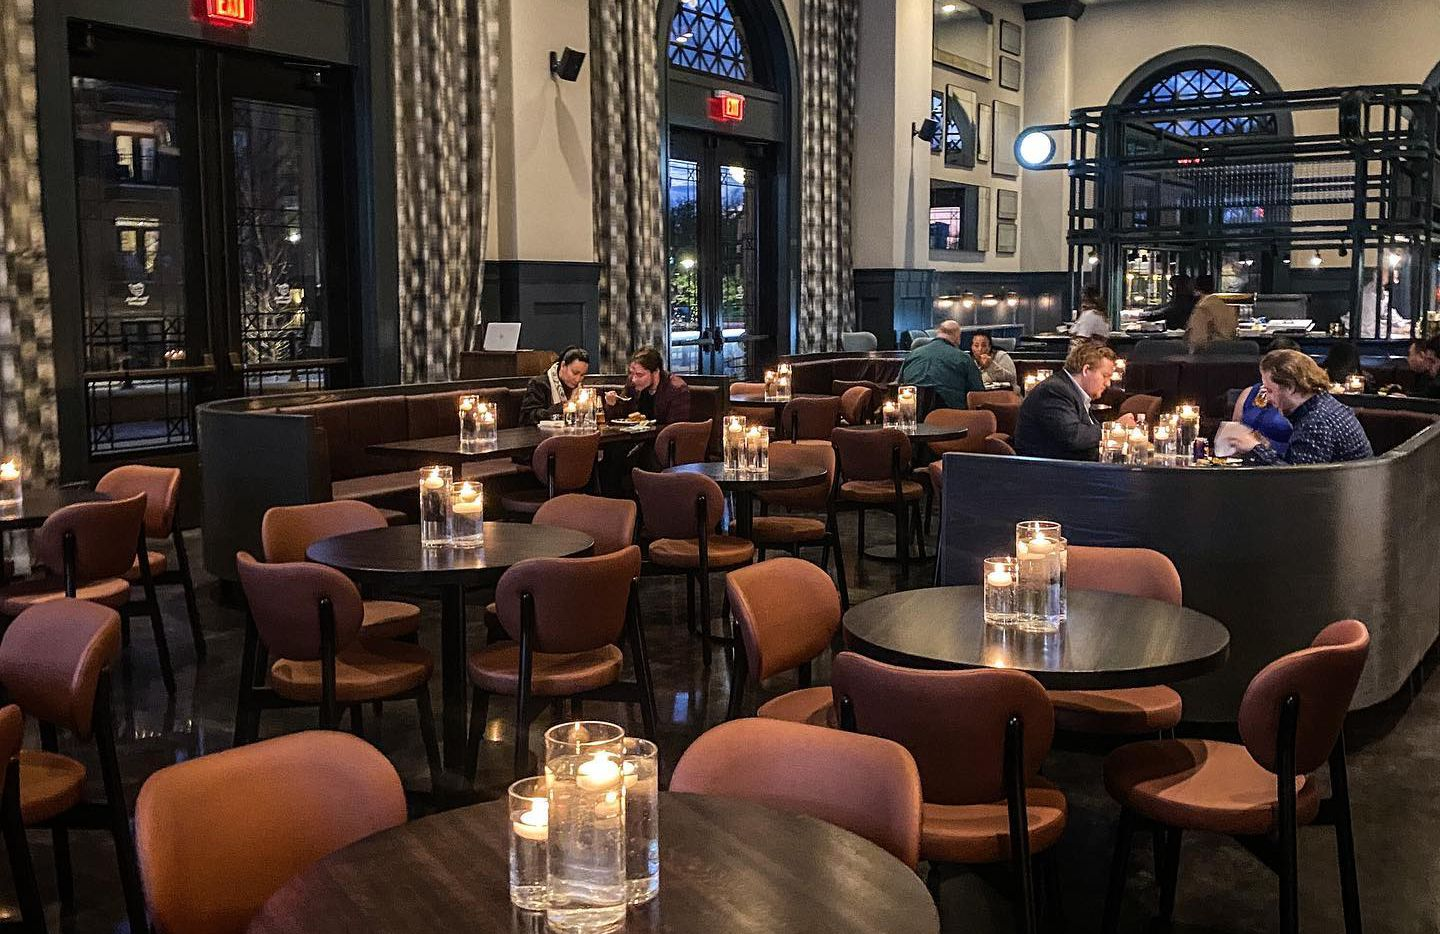 Third Rail, one of two bars at Harvest Hall, will screen the Super Bowl on Sunday at a viewing party, with tickets going for $50.